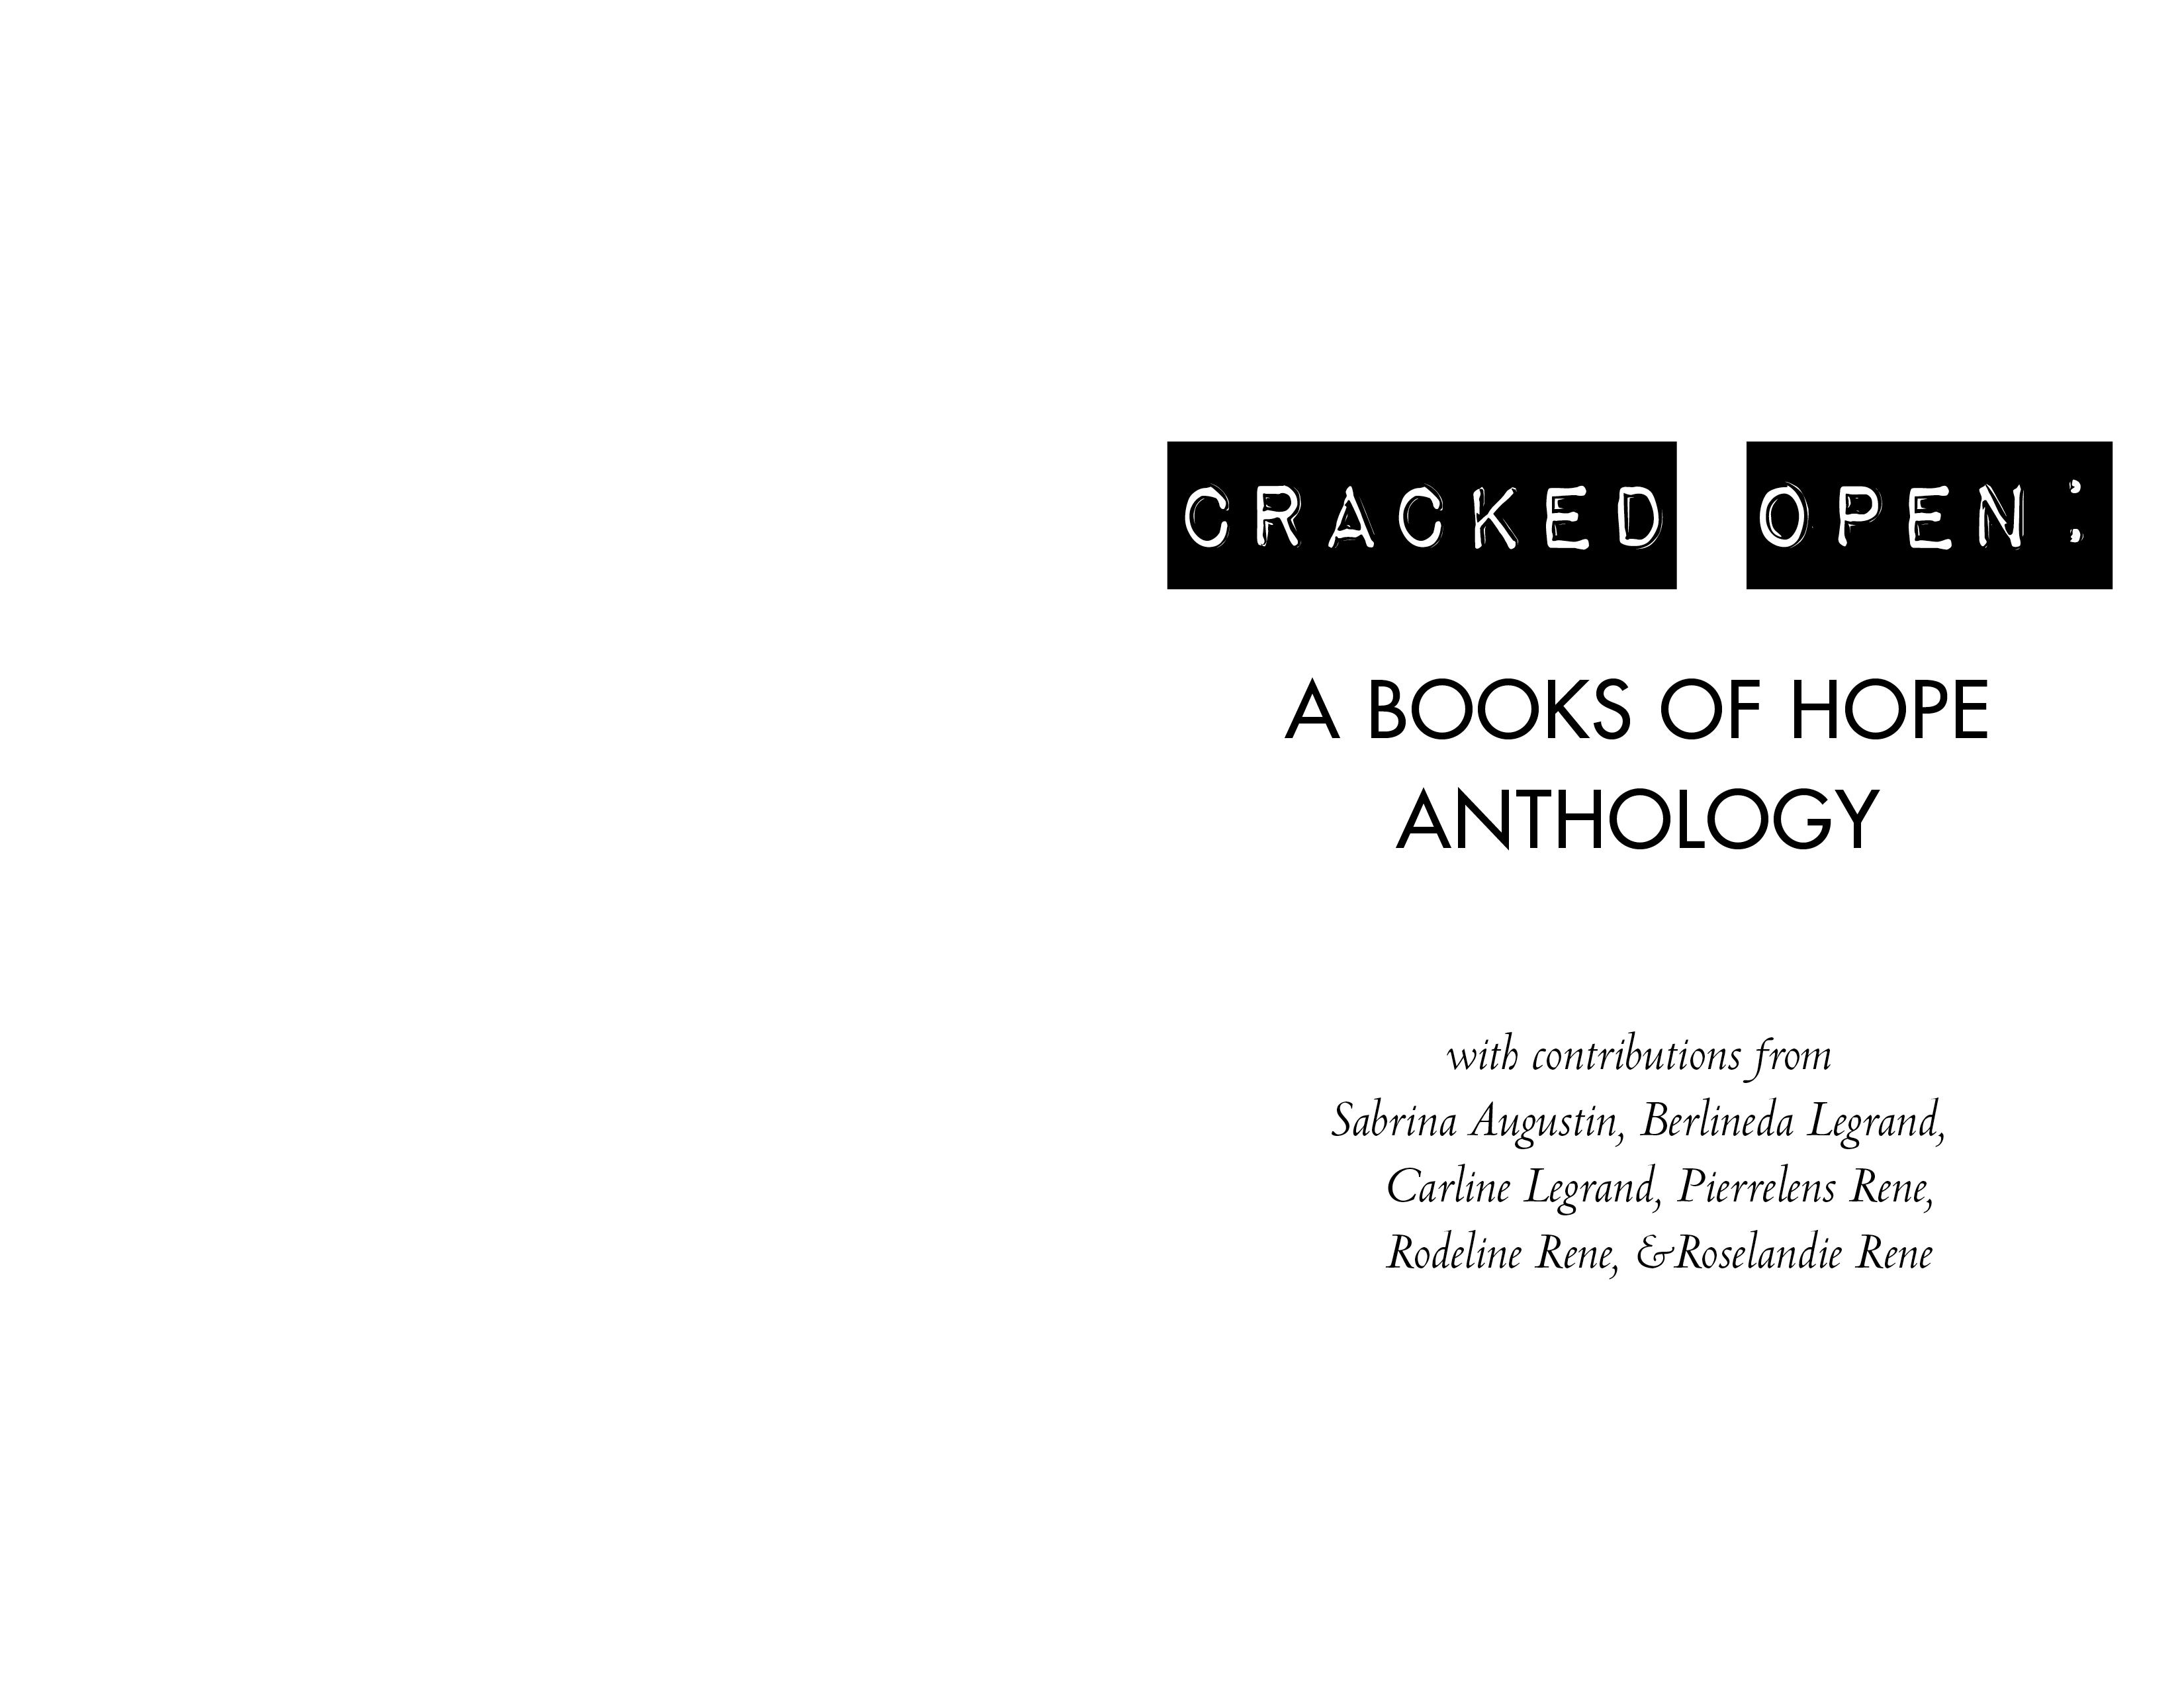 Title page for CRACKED OPEN